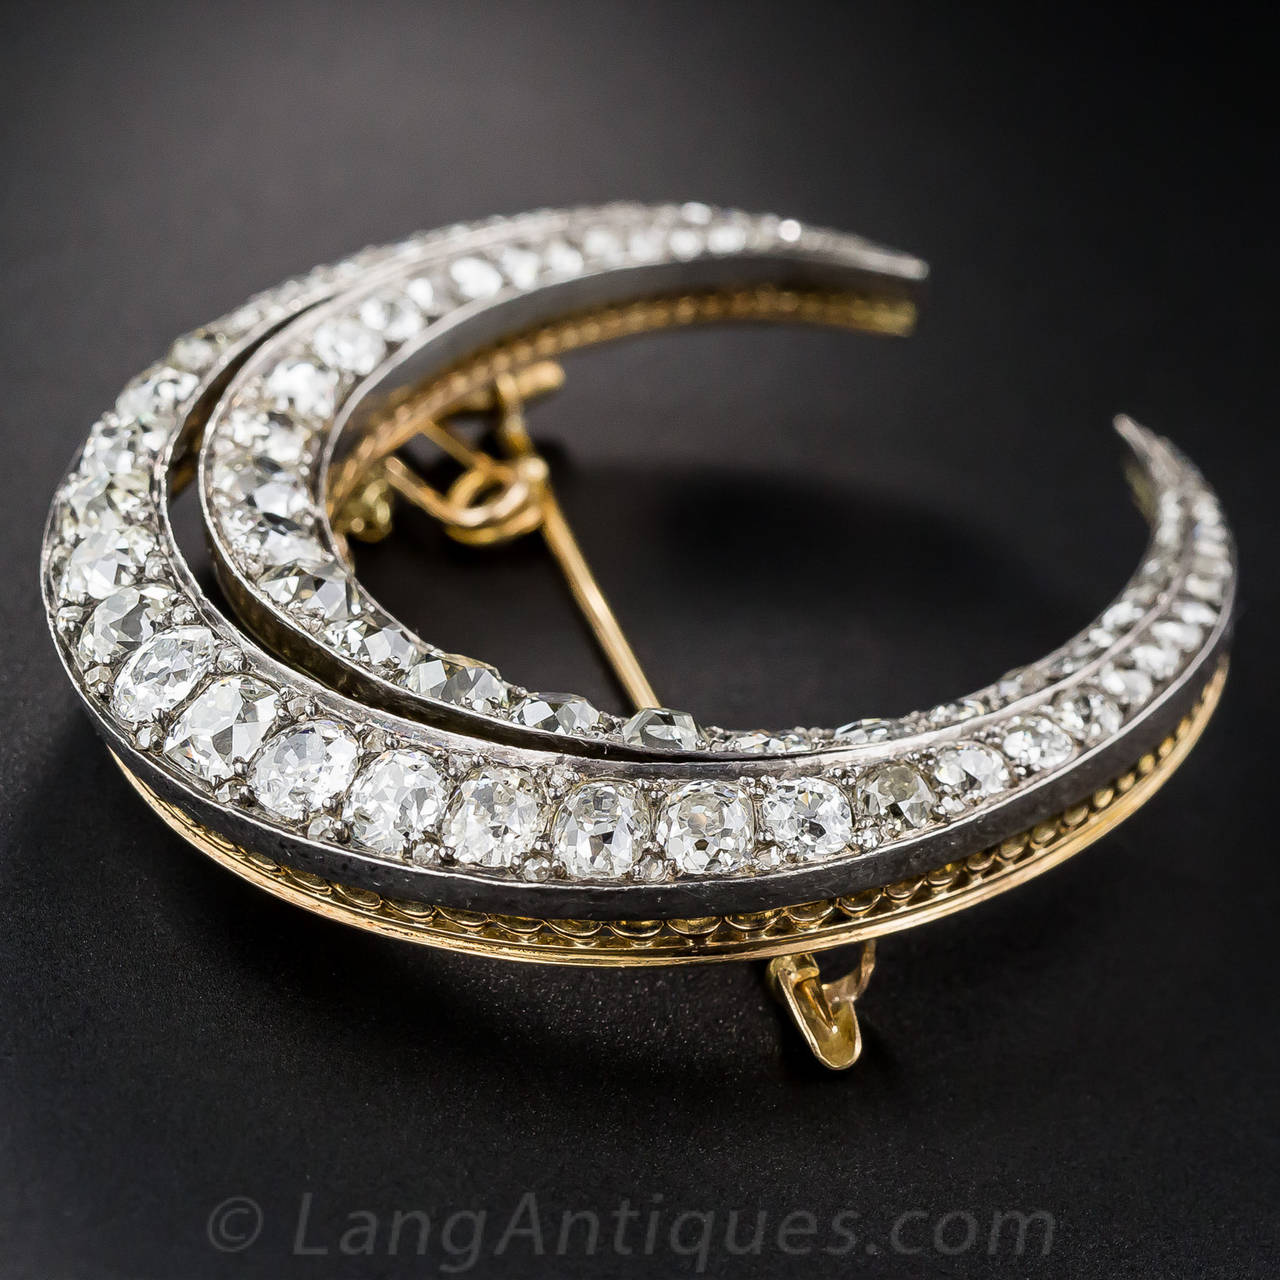 Large French Antique Diamond Crescent Brooch In Excellent Condition For Sale In San Francisco, CA